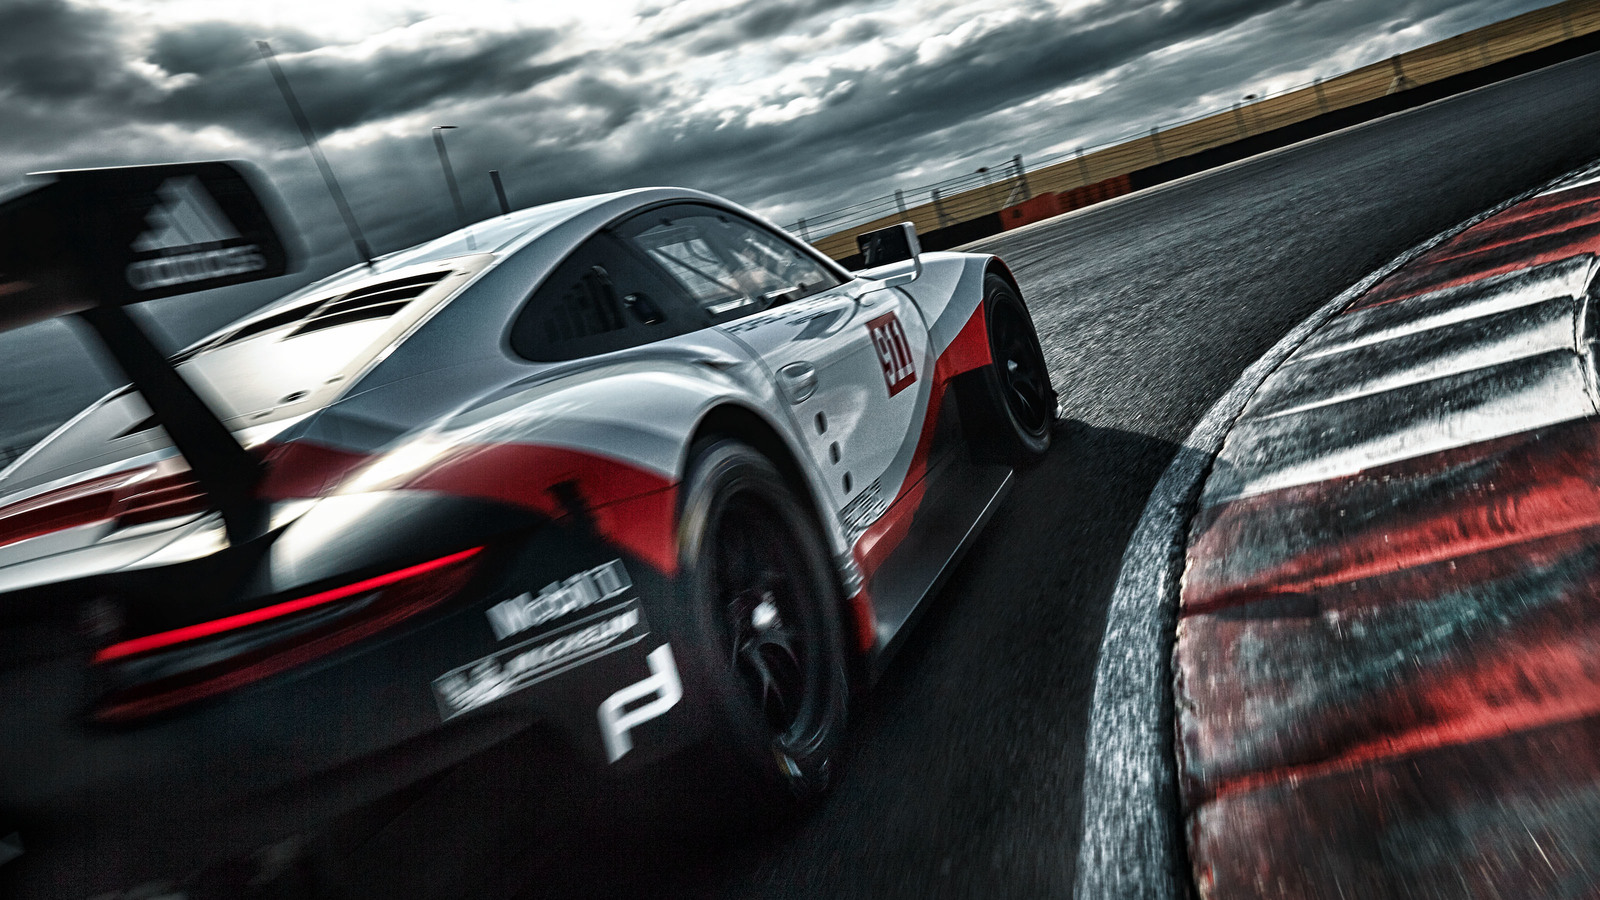 2017 Porsche 911 Rsr Race Car Is Now Mid Engined Image